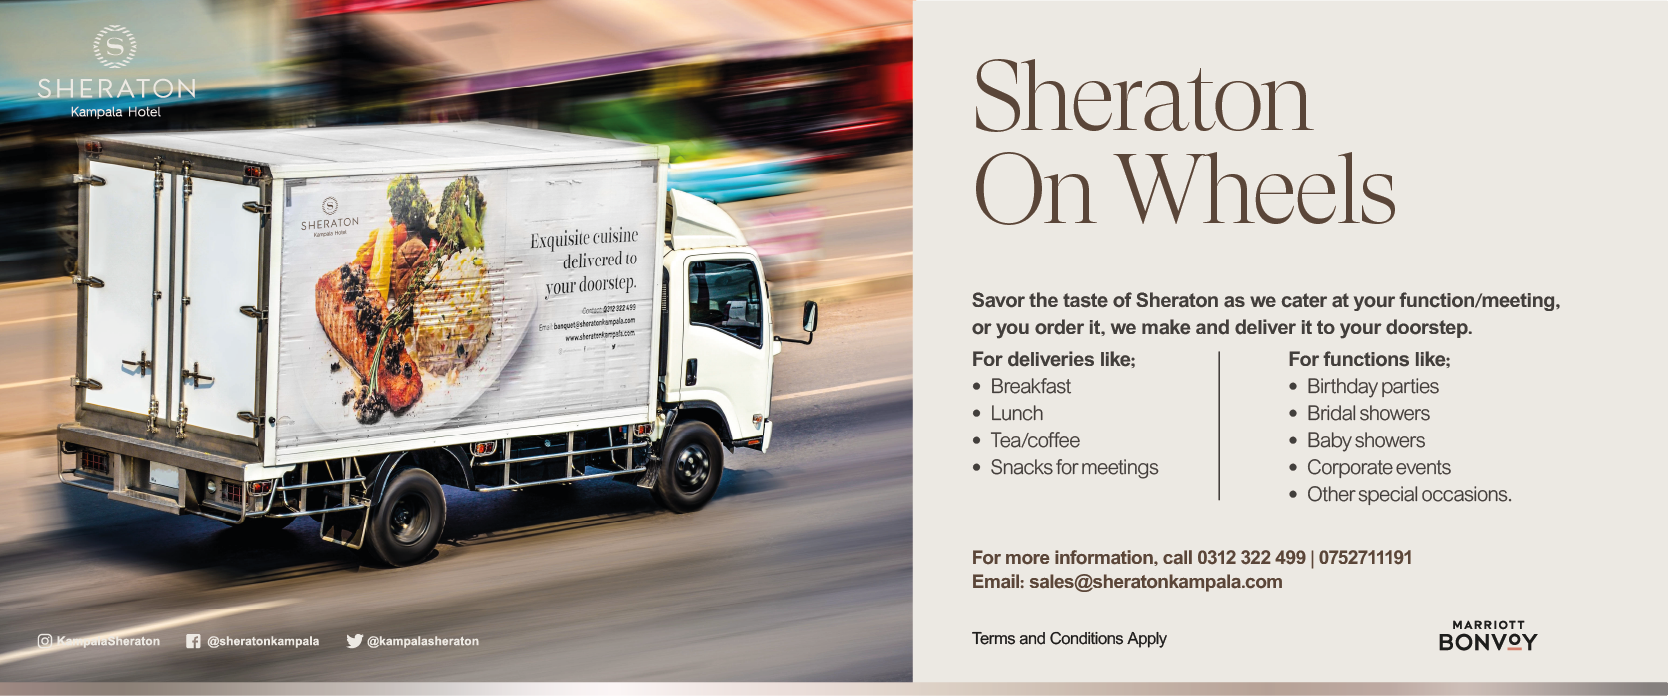 Outside catering required? Look no further, call the Sheraton Kampala Hotel